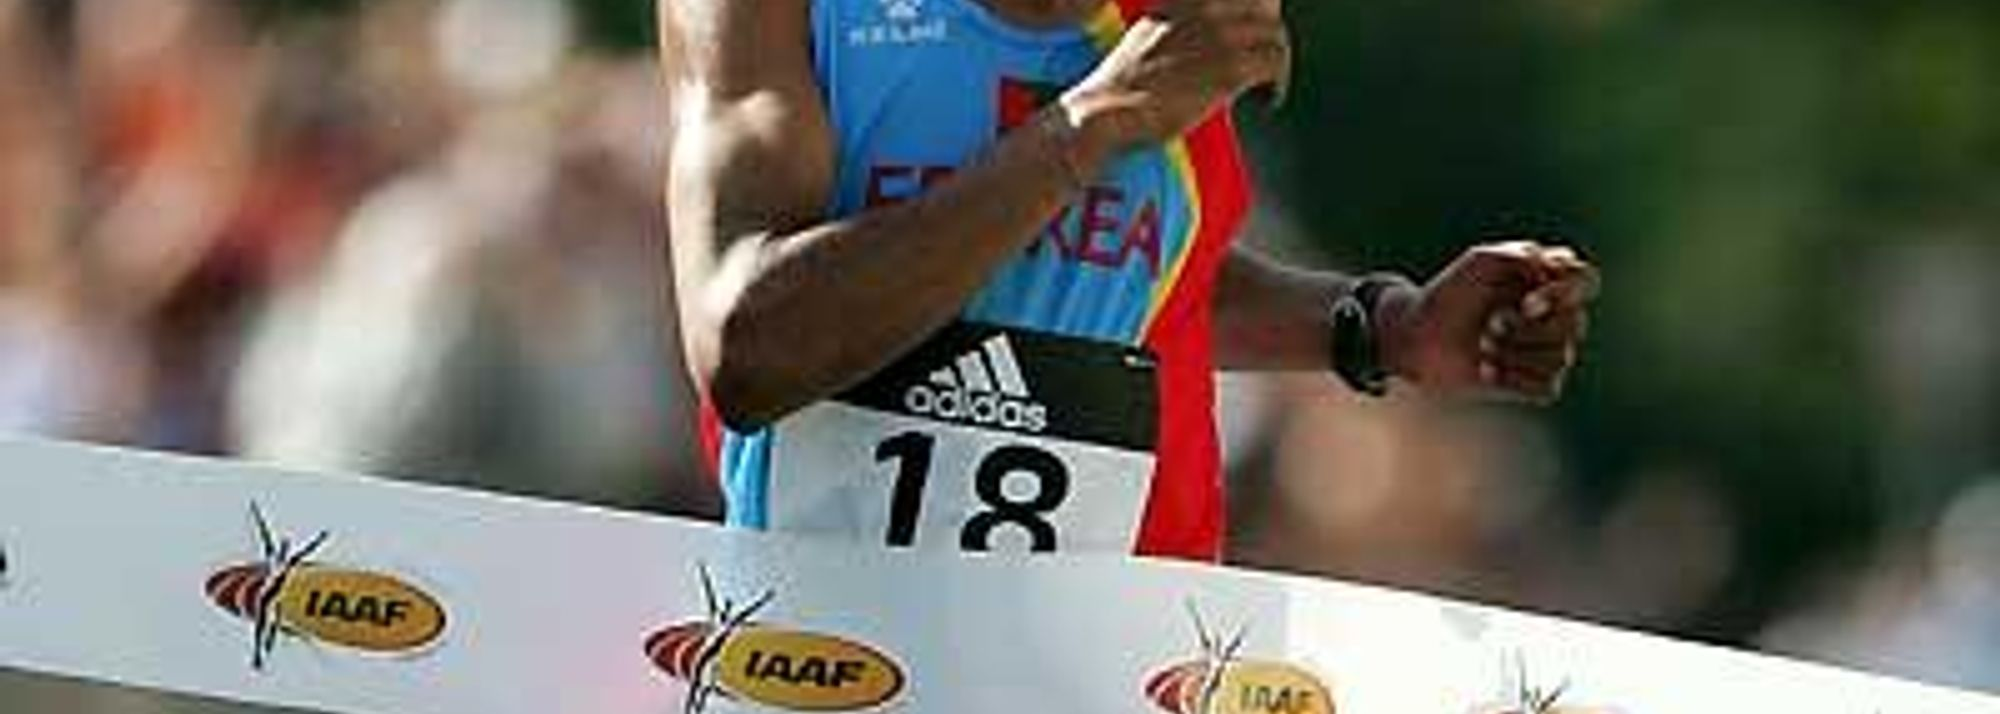 Zersenay Tadesse, 2004 Olympic 10,000m bronze medallist, secured his and Eritrea's first global title, just 13 seconds adrift of the World record for 20km. In doing so he convincingly won the inaugural men's title at the IAAF World Road Running Championships this afternoon, on a 5km loop course whose start and finish was in front of the imposing edifice of the neo-classical main building of Debrecen University.